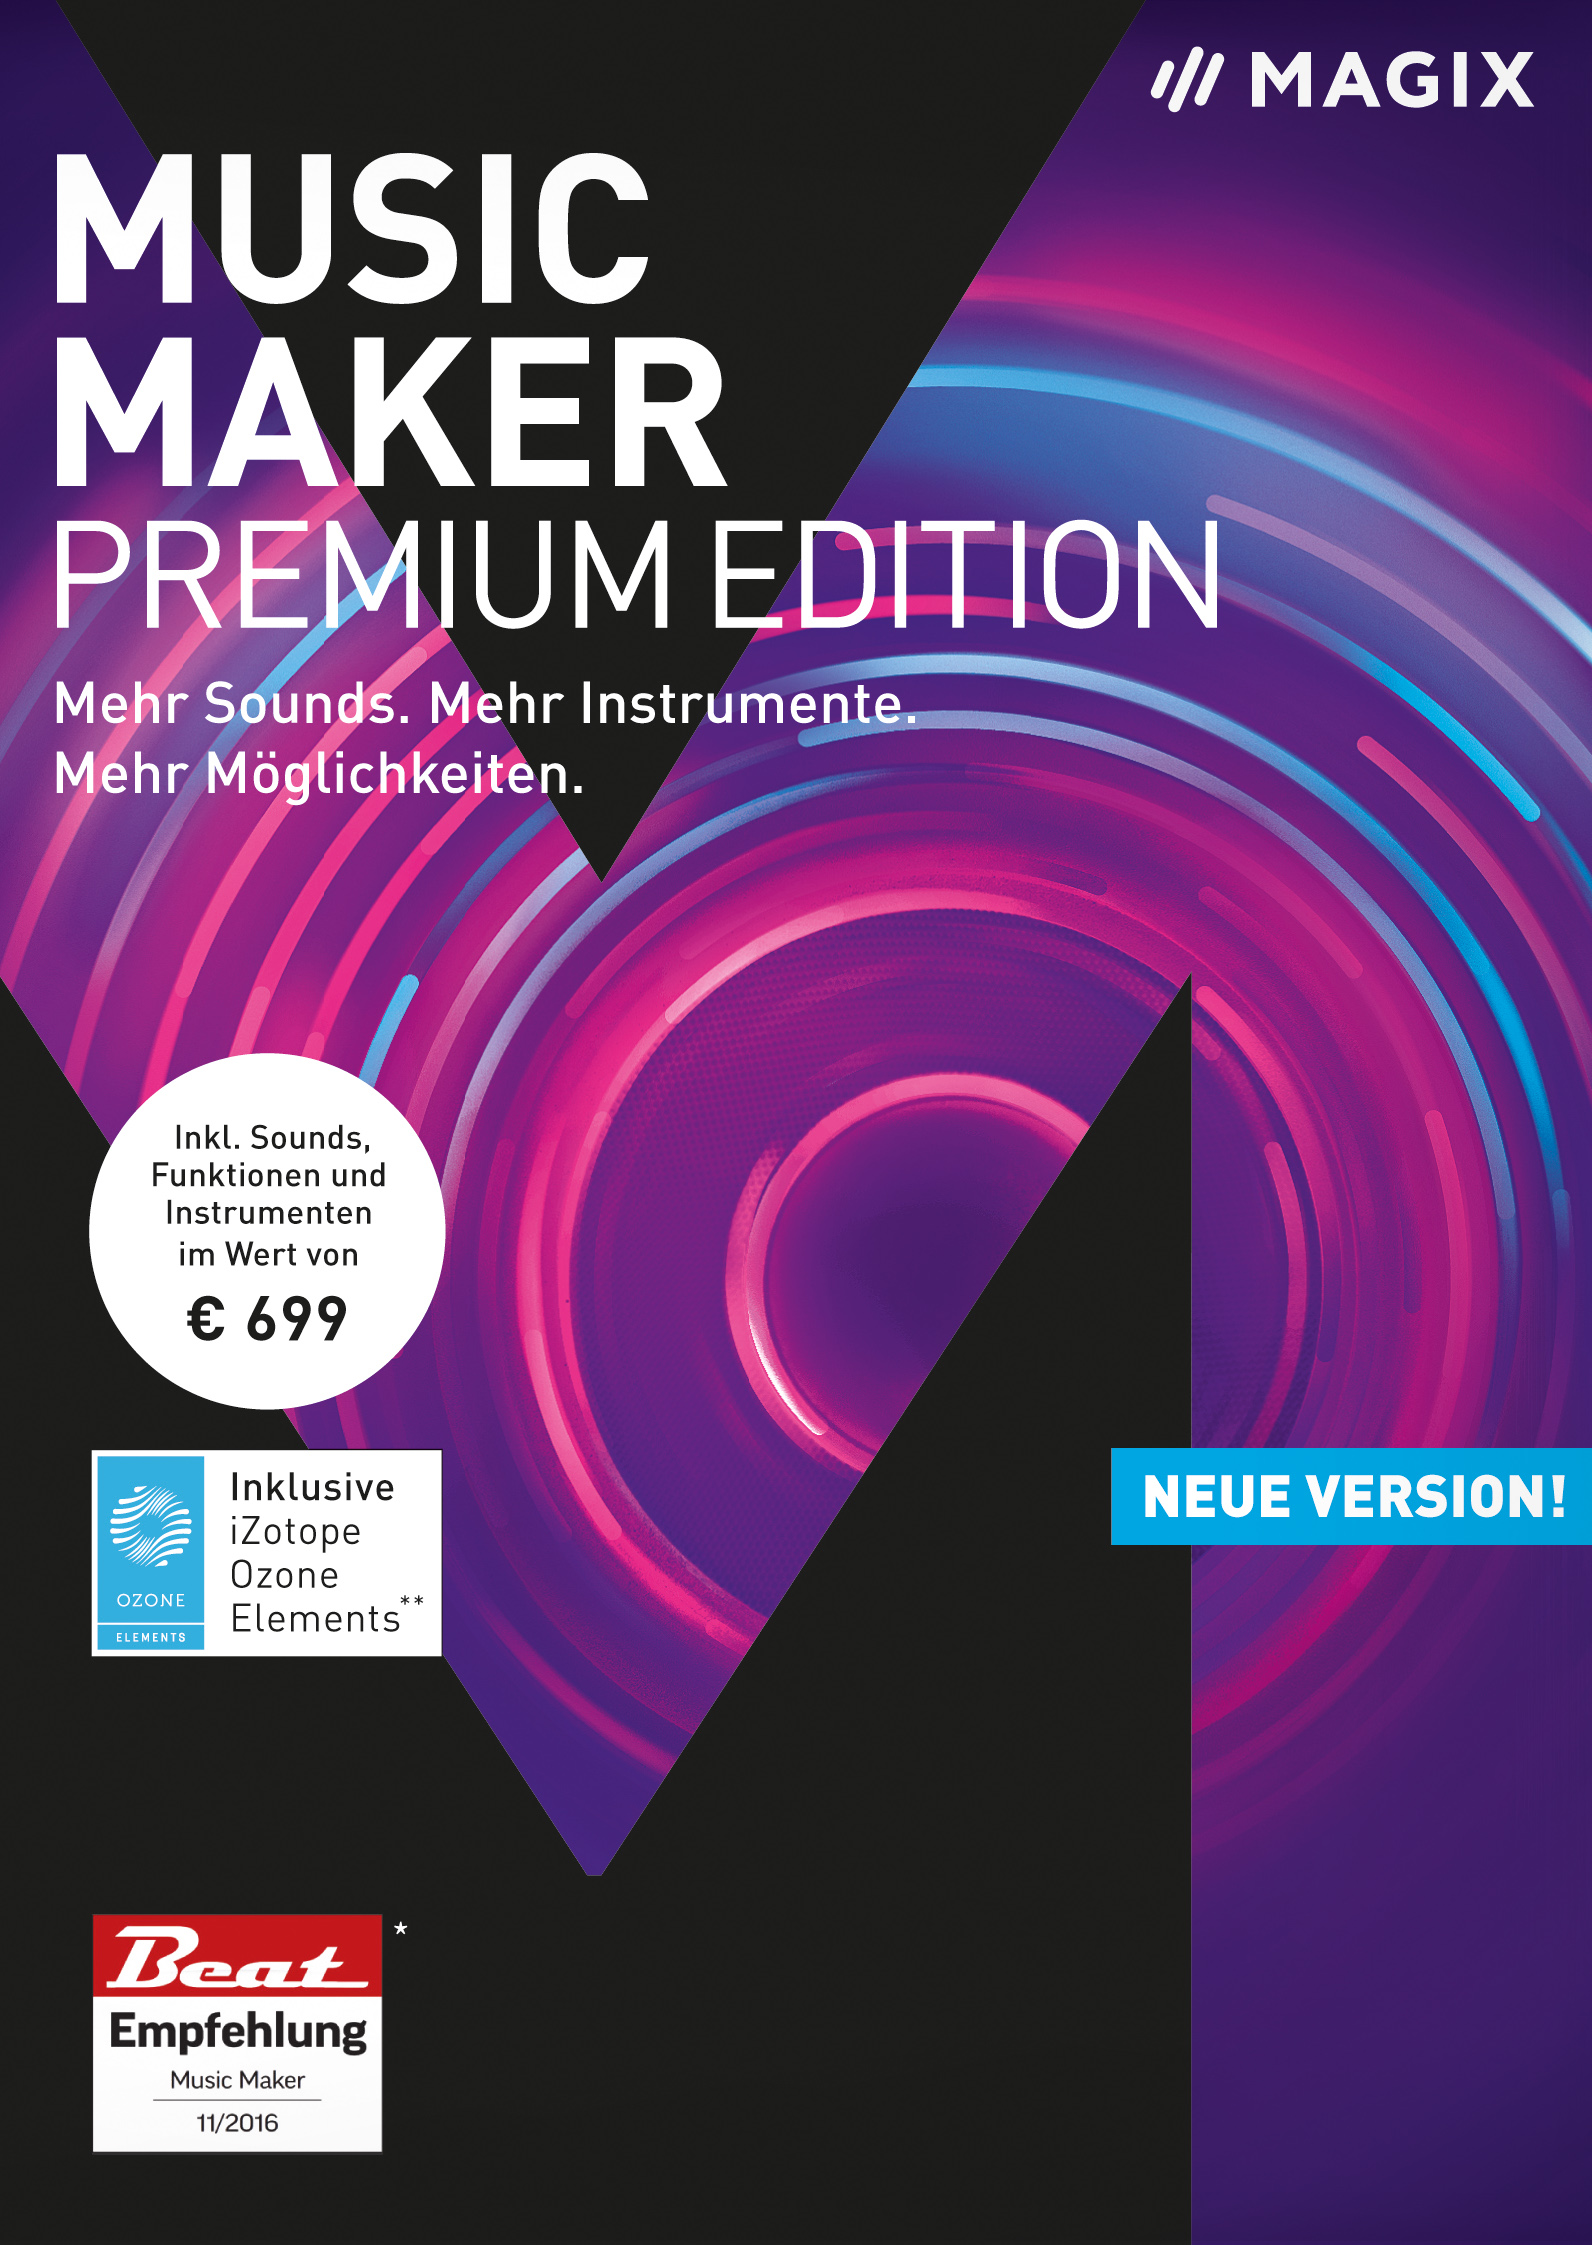 MAGIX Music Maker - 2018 Premium Edition - Die Audiosoftware mit mehr Sounds, Instrumenten und Möglichkeiten [Download] (Software Komponieren Musik)